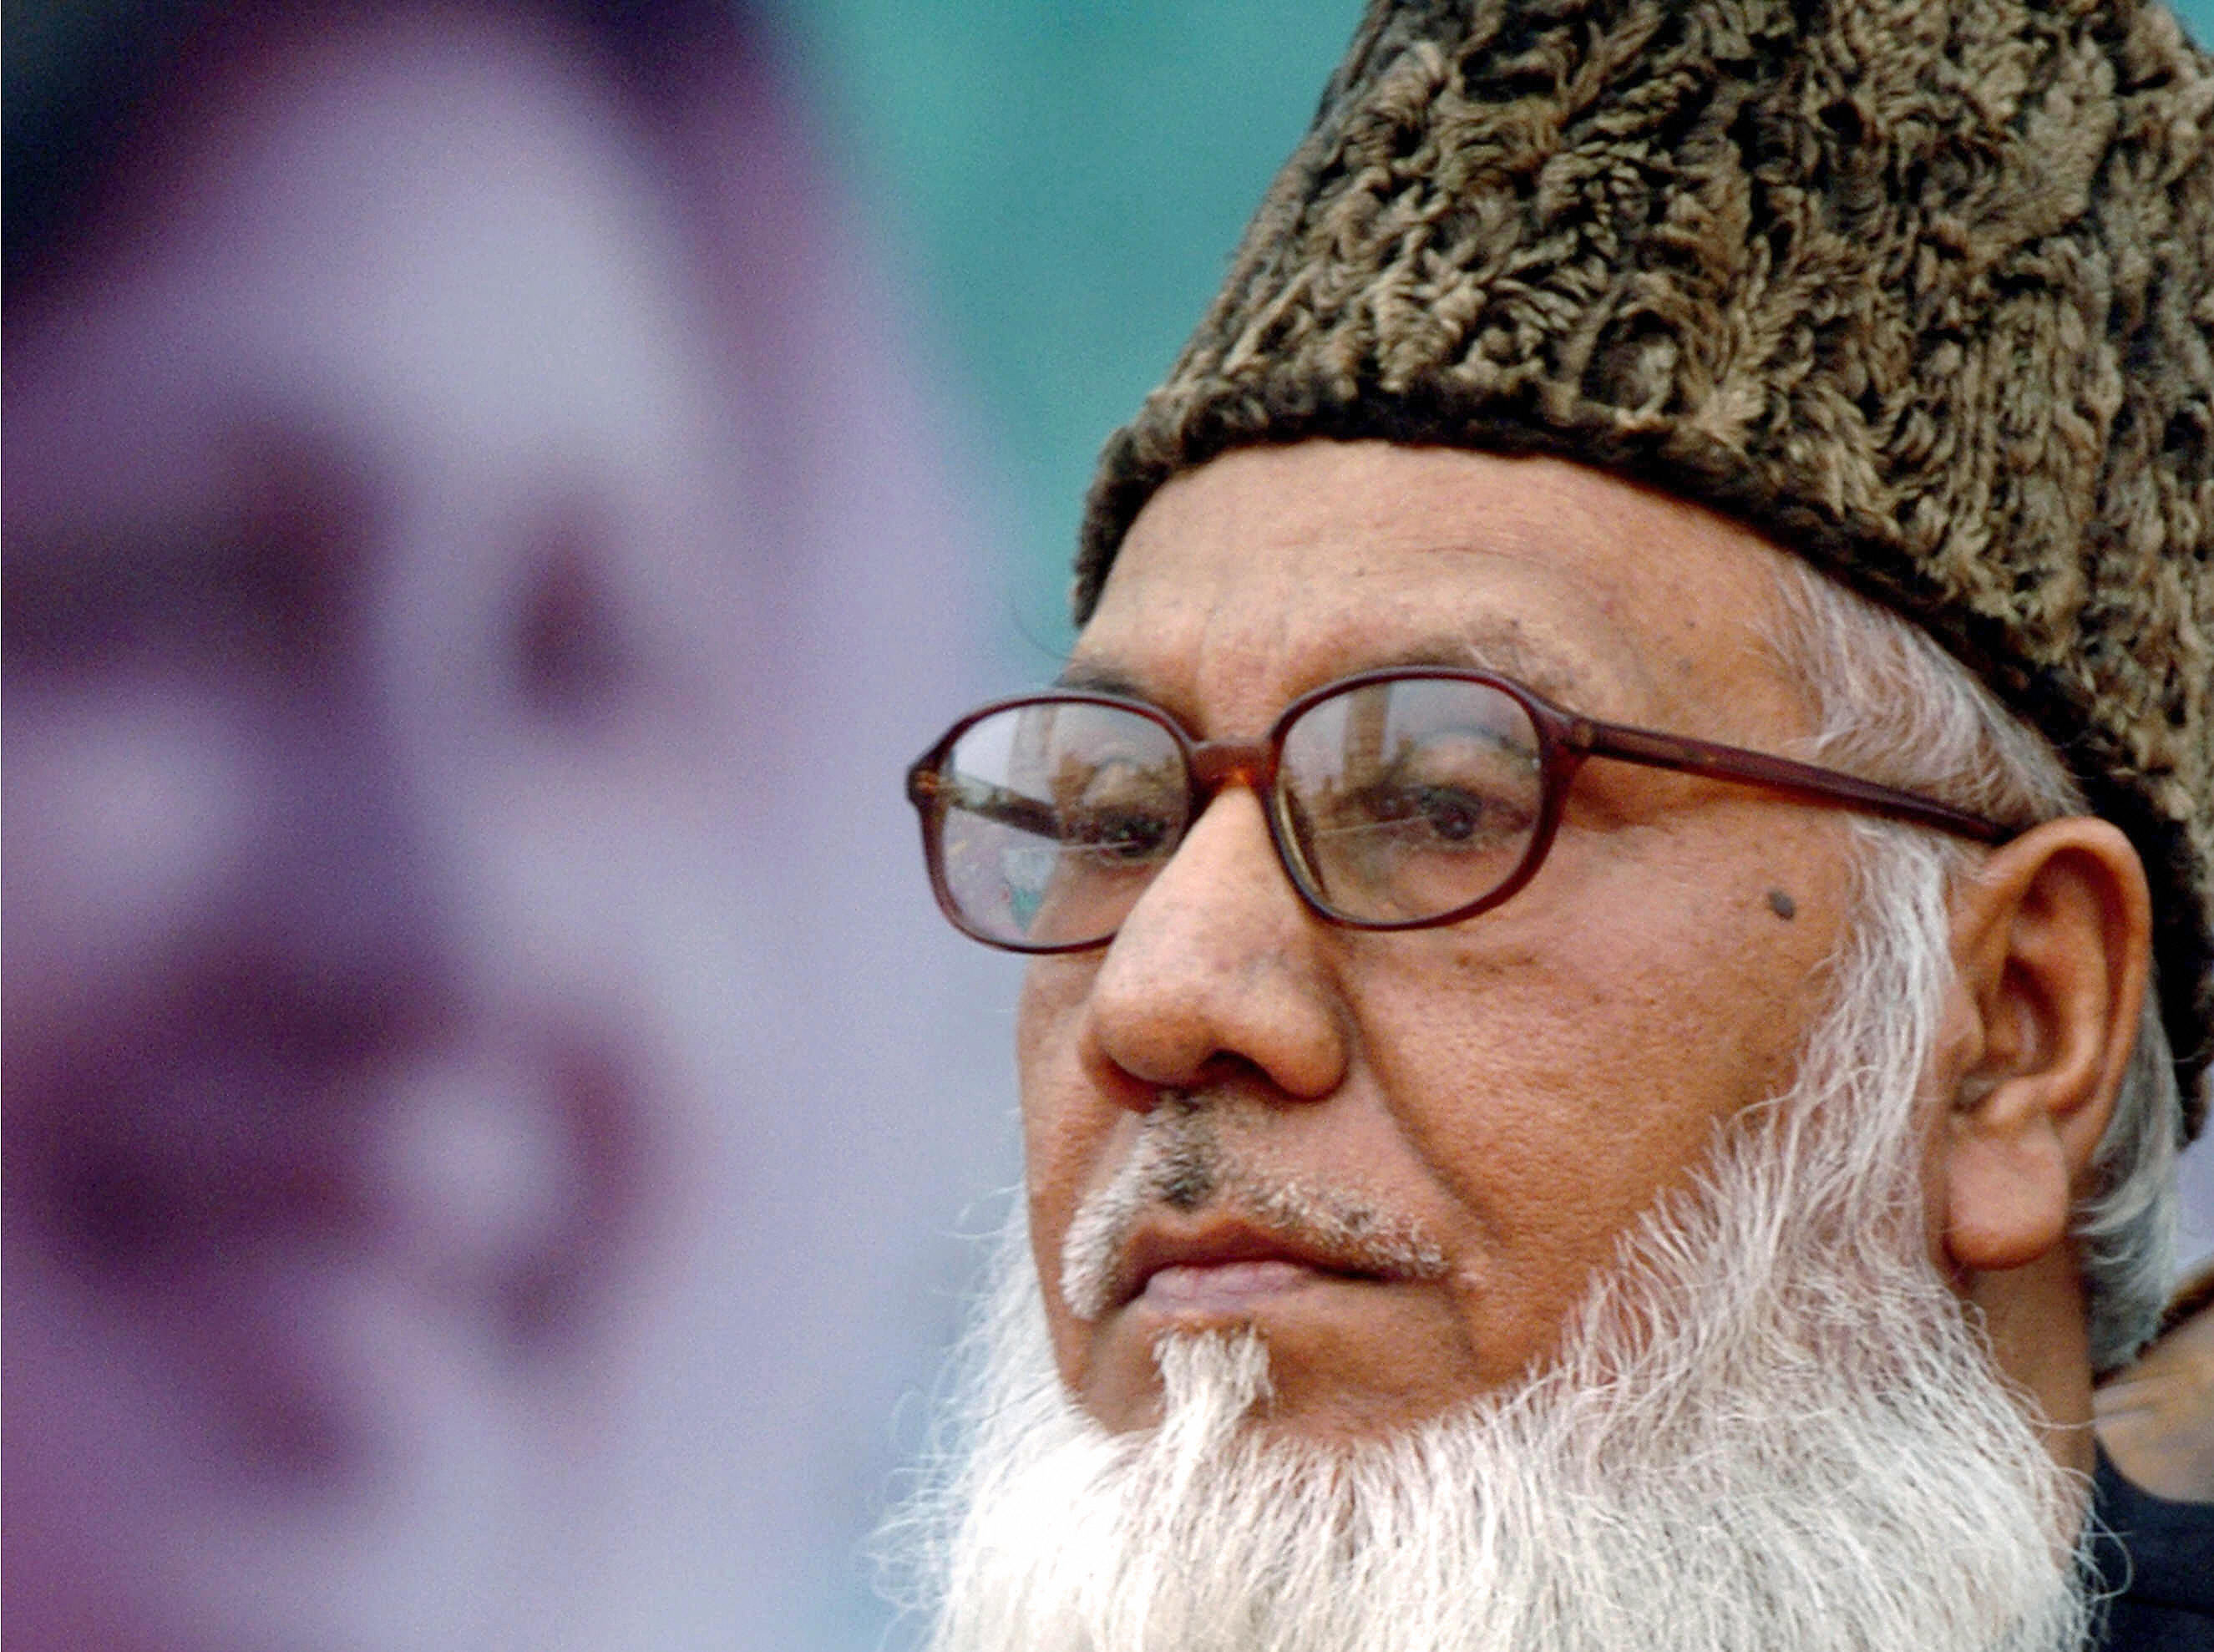 Former industries minister and leader of the Jamaat-e-Islami Islamic party in Bangladesh Motiur Rahman Nizami as he during a rally in Dhaka, Dec. 12, 2006